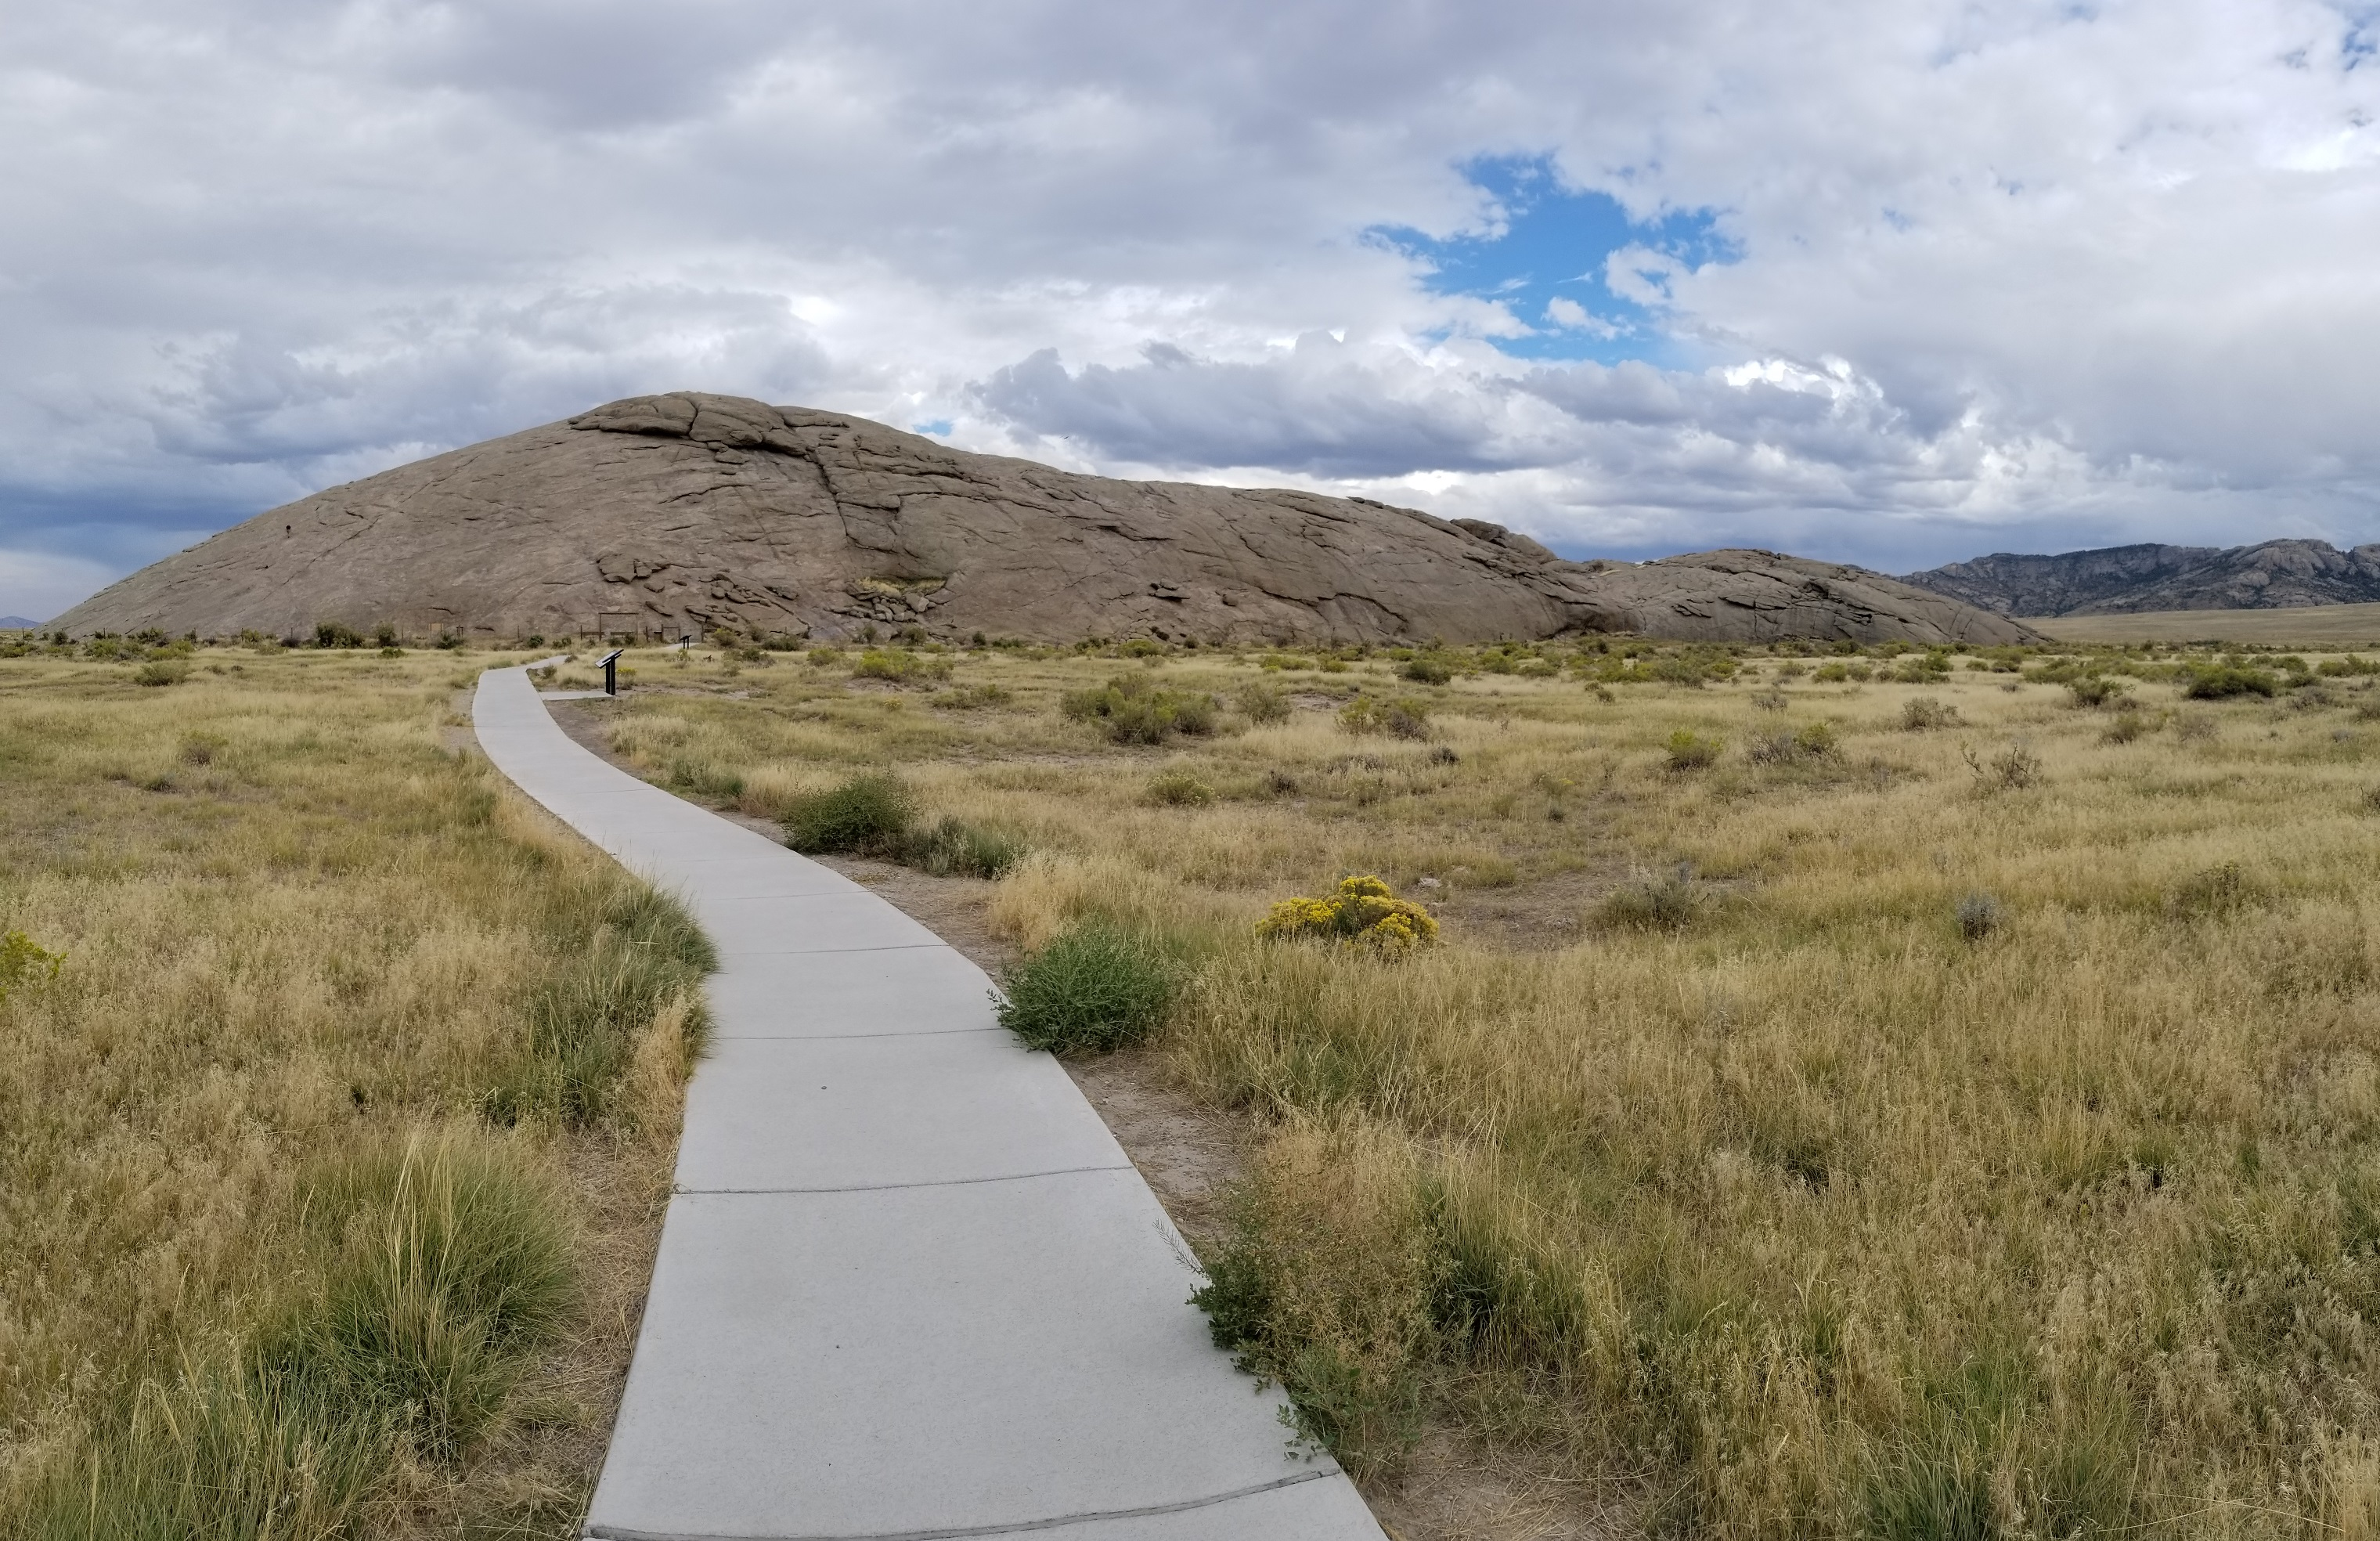 Independence Rock, in Wyoming, was a prominent landmark on the California Trail. Photo by Erika Schaubach.